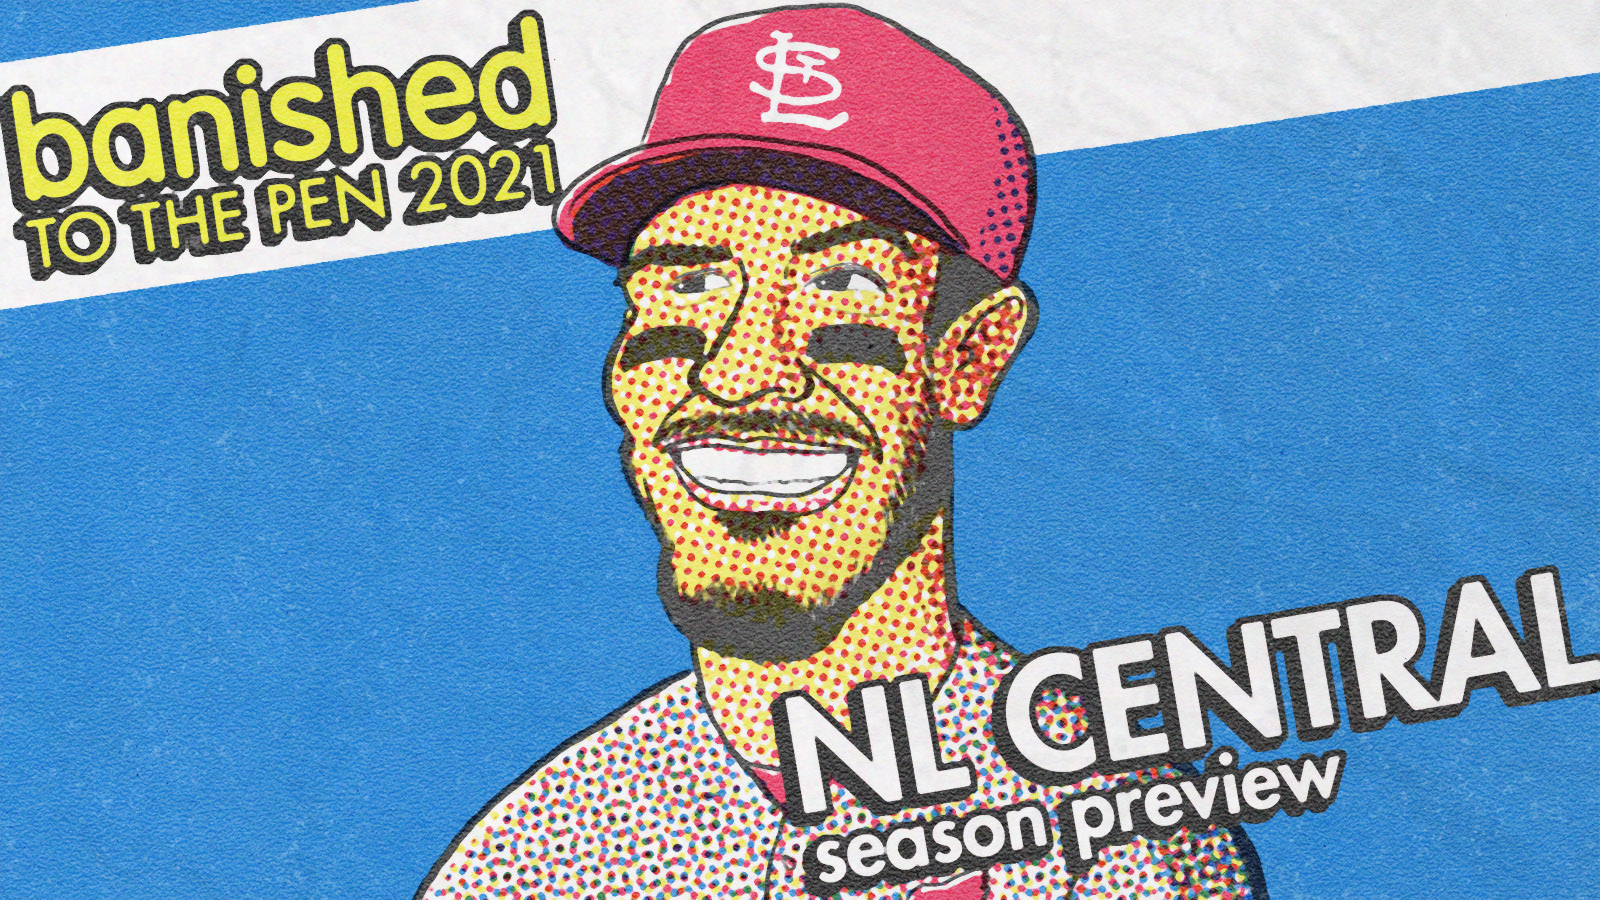 Season Previews 2021 - NL Central (Nolan Arenado)